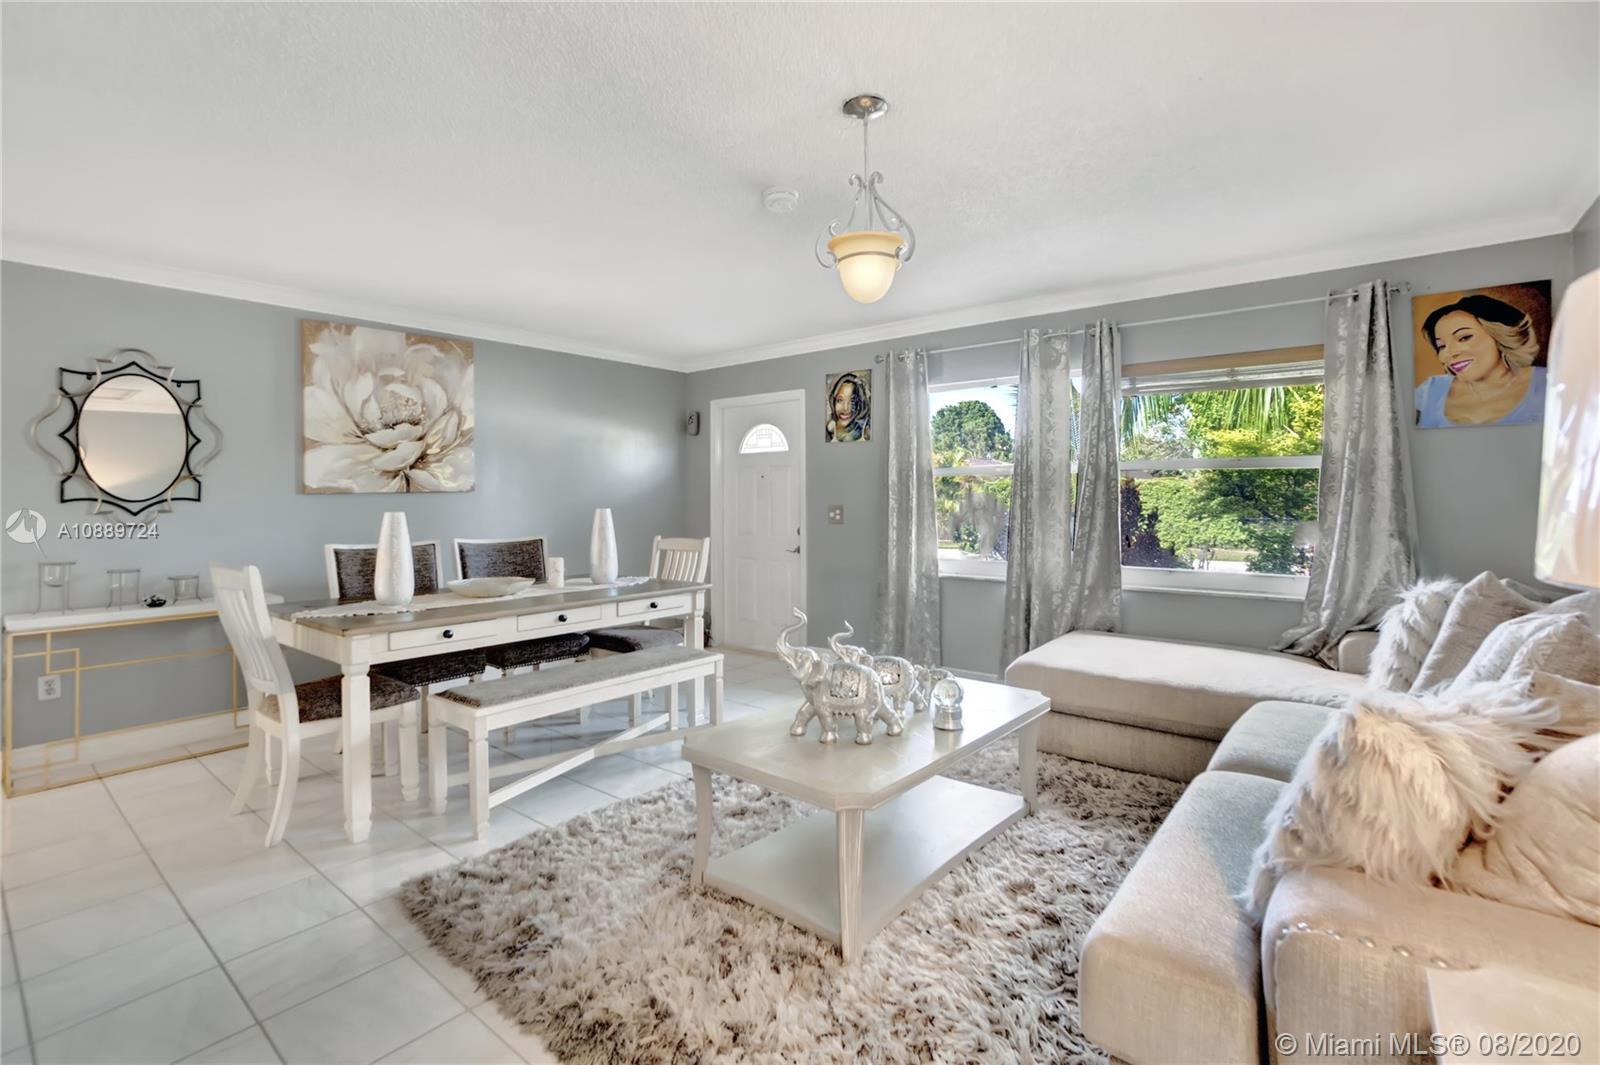 REDUCED TO SELL! Bring all offers!!!! Nicely updated 3/2 home in the desirable West Boca Raton Area